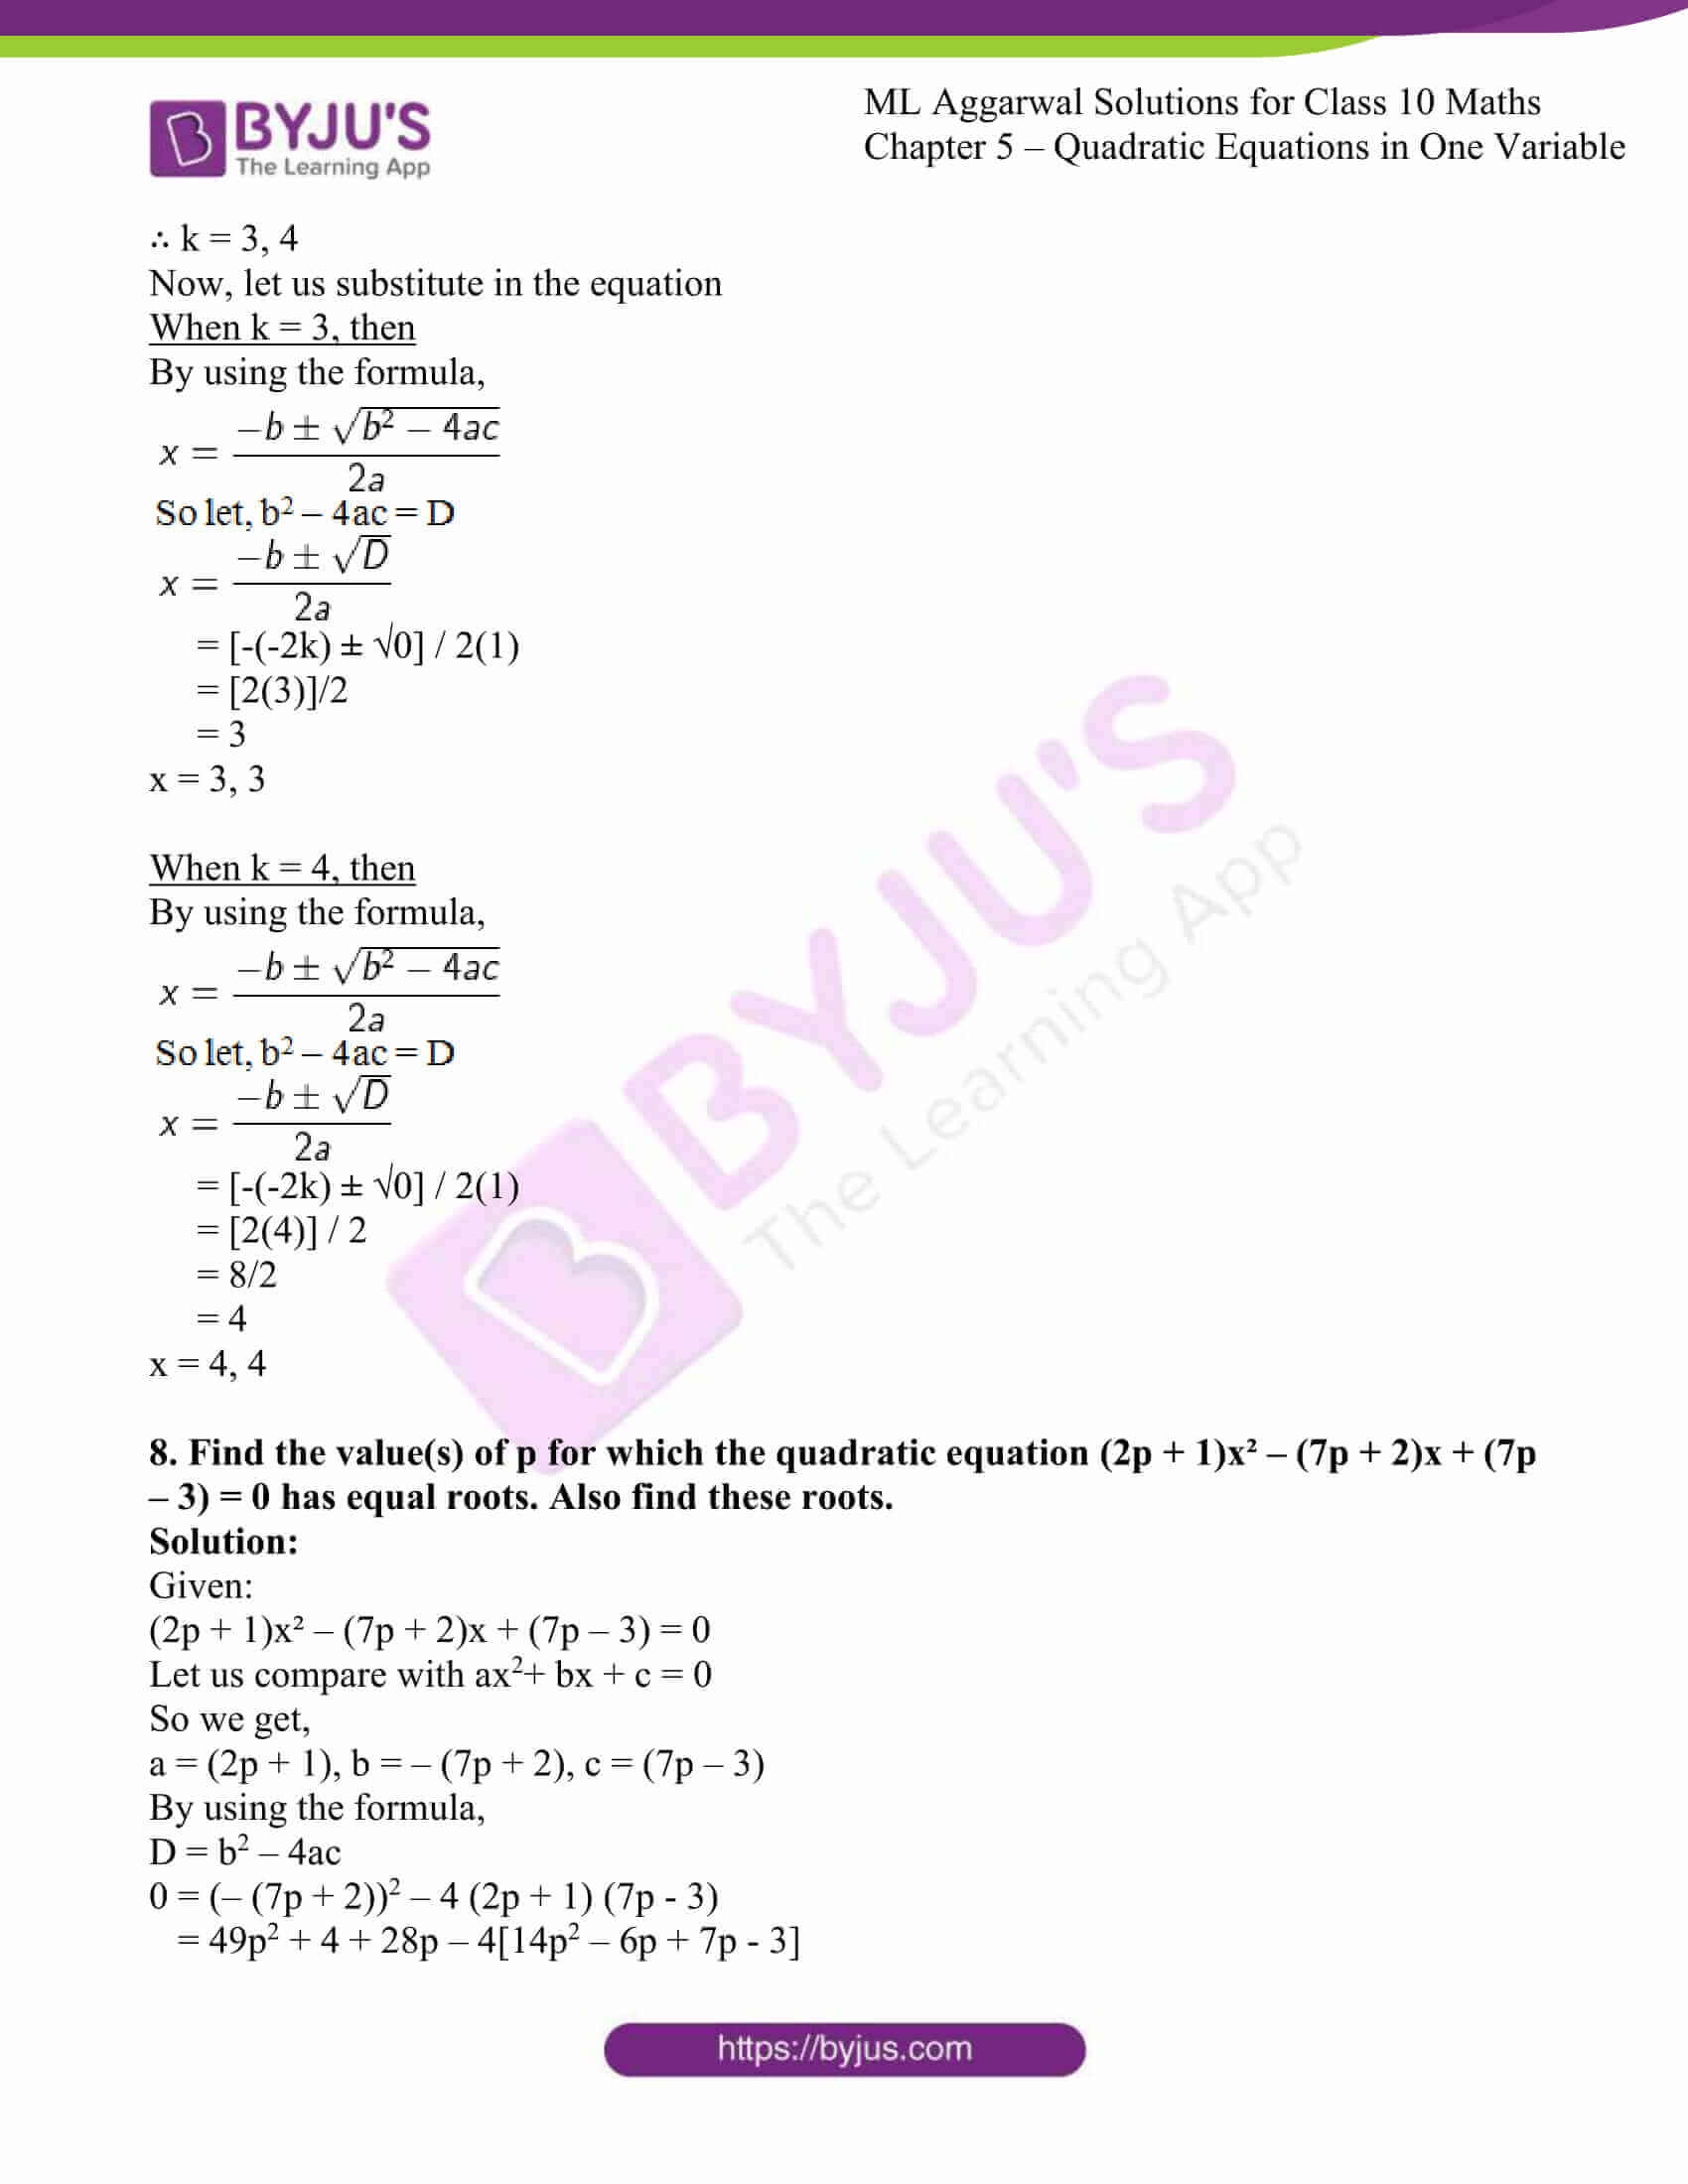 ml aggarwal solutions class 10 maths chapter 5 47